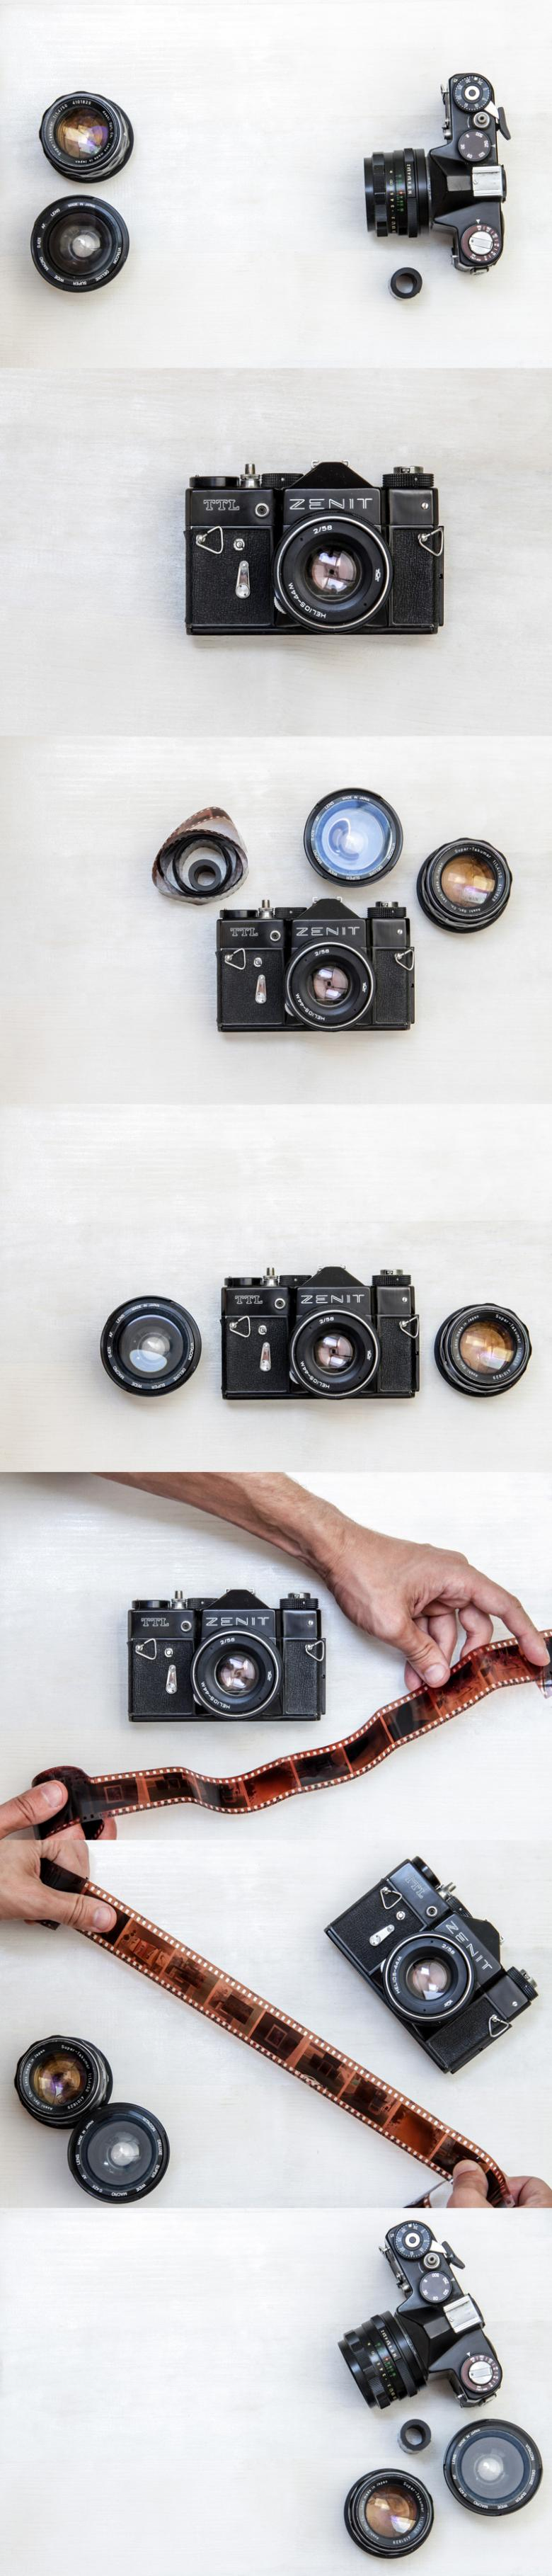 7 Retro Camera Stock Photos